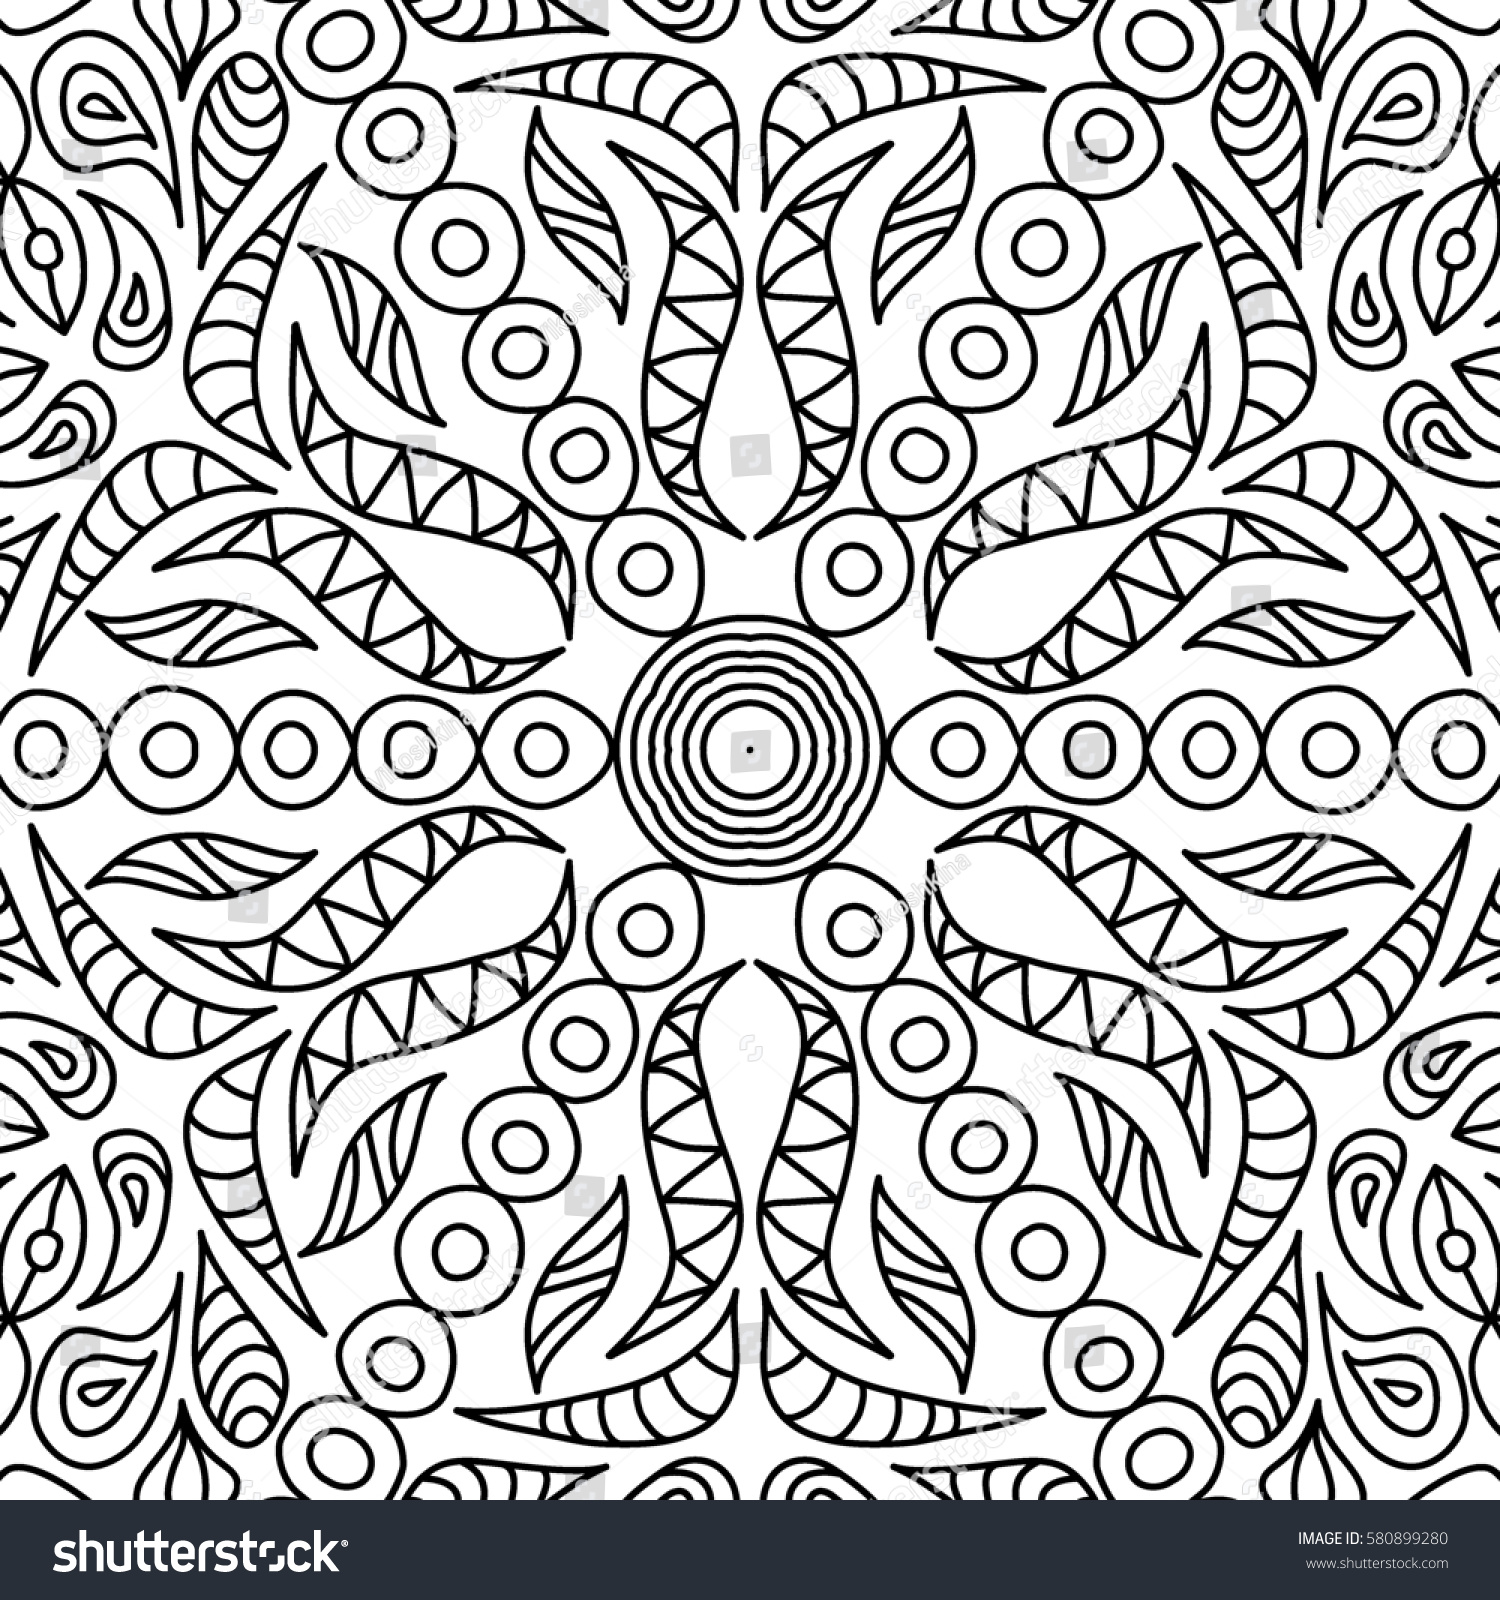 Adult Coloring Book Page Seamless Ornate Stock Illustration